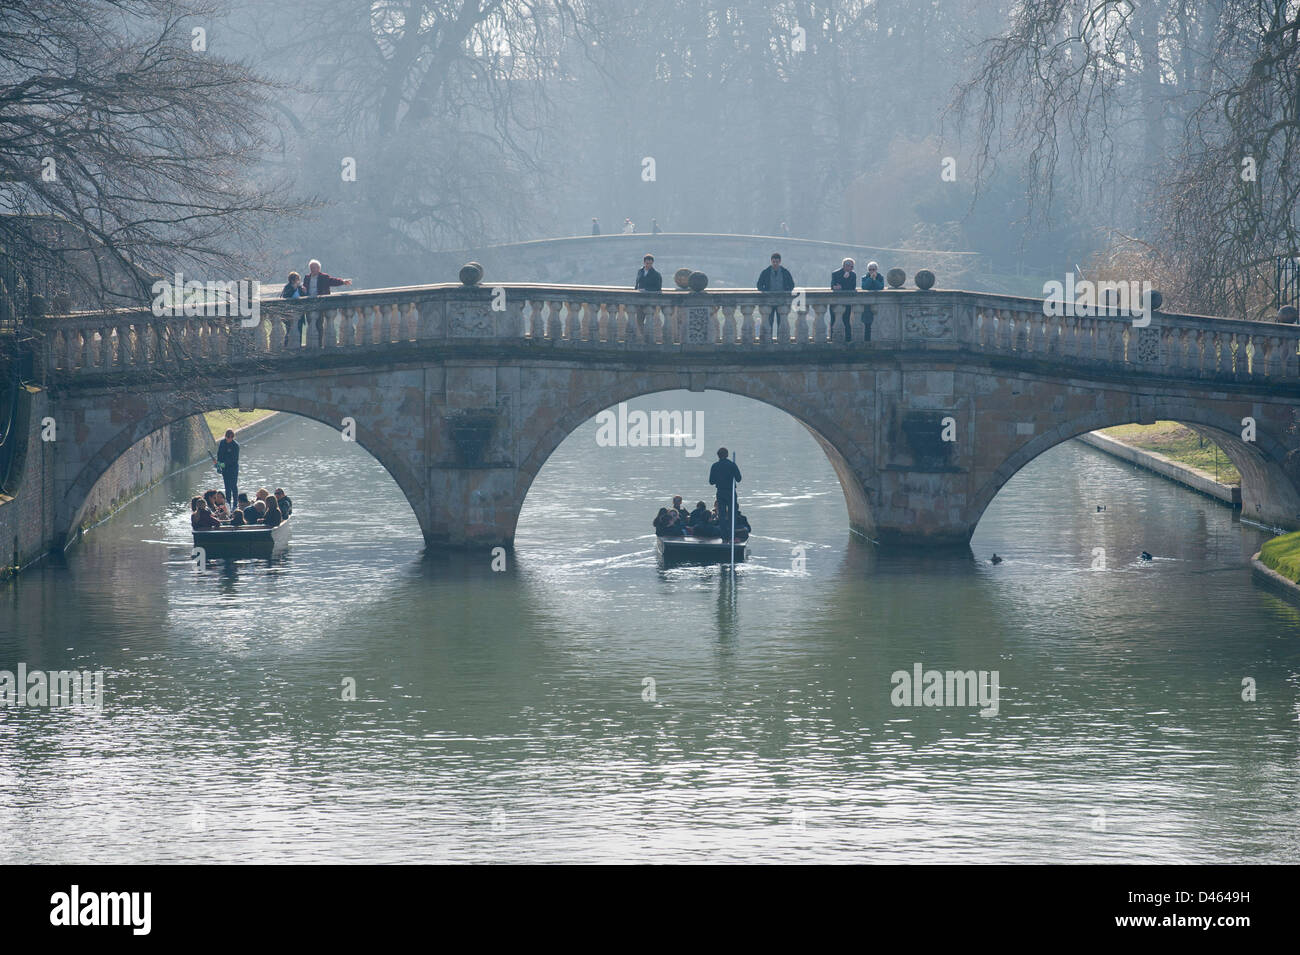 Early morning on the River Cam, Cambridge, as the sun burns off the morning mist. 5-3-2013 Early morning punters - Stock Image